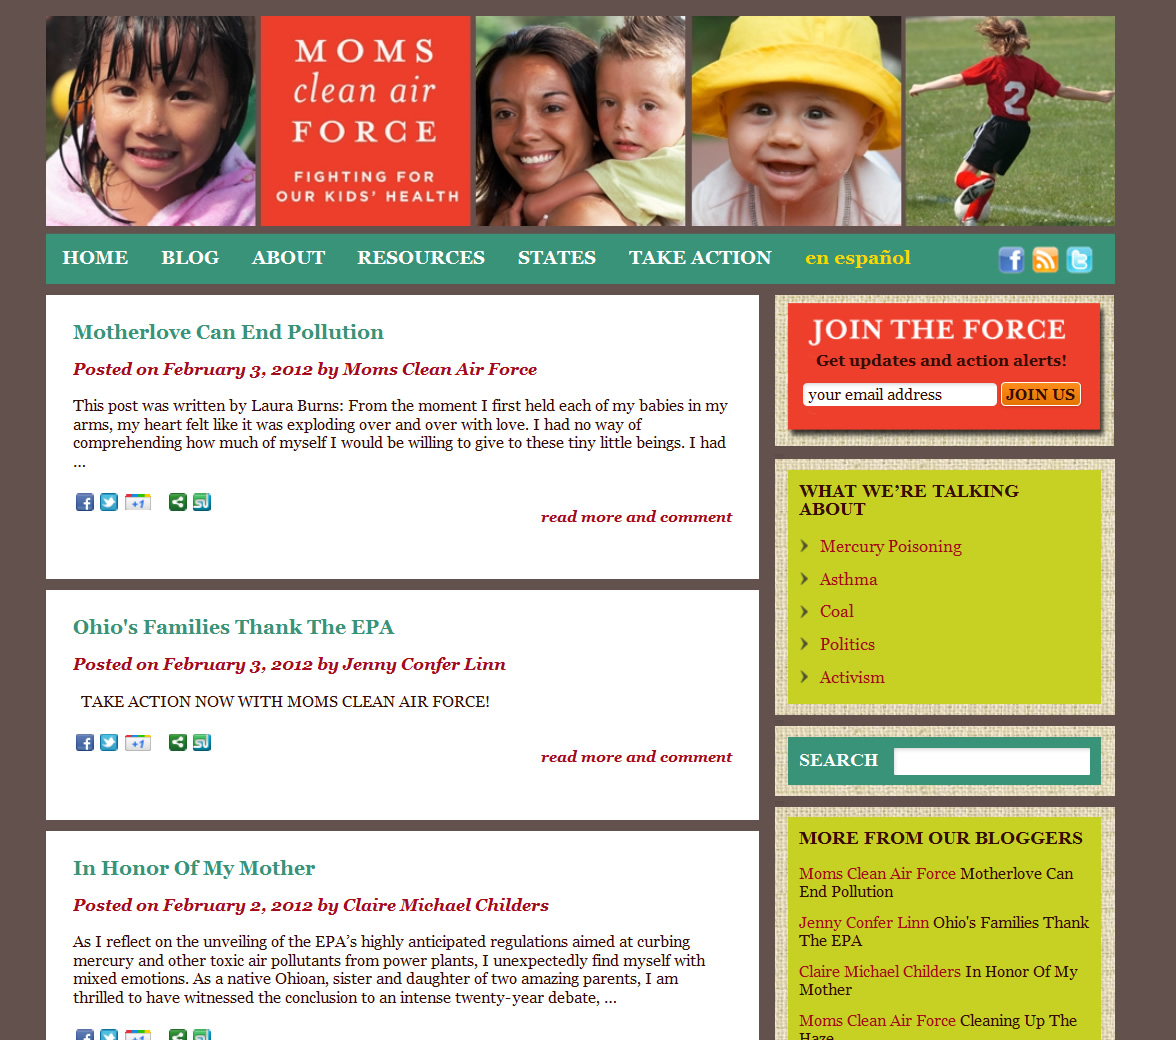 Moms Clean Air Force Blog Page